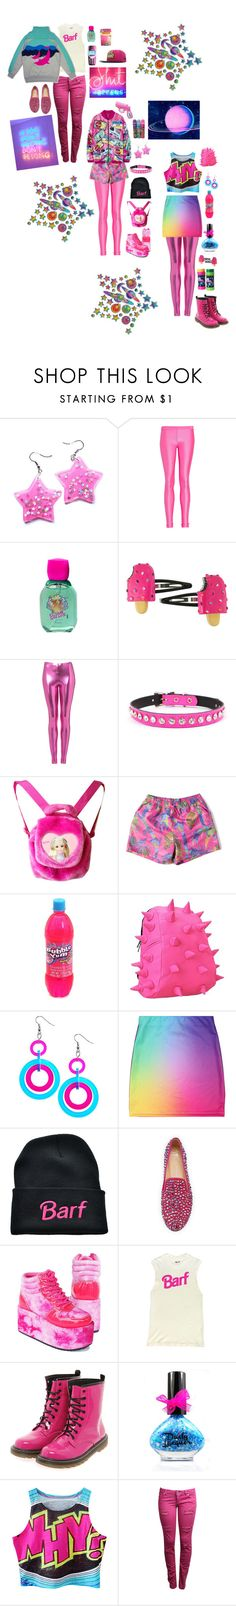 """""""shut it"""" by astral-leech ❤ liked on Polyvore featuring Thomas Wylde, Mattel, Topshop, Zara Home, MadPax, Giuseppe Zanotti, Boohoo and Moon Collection"""